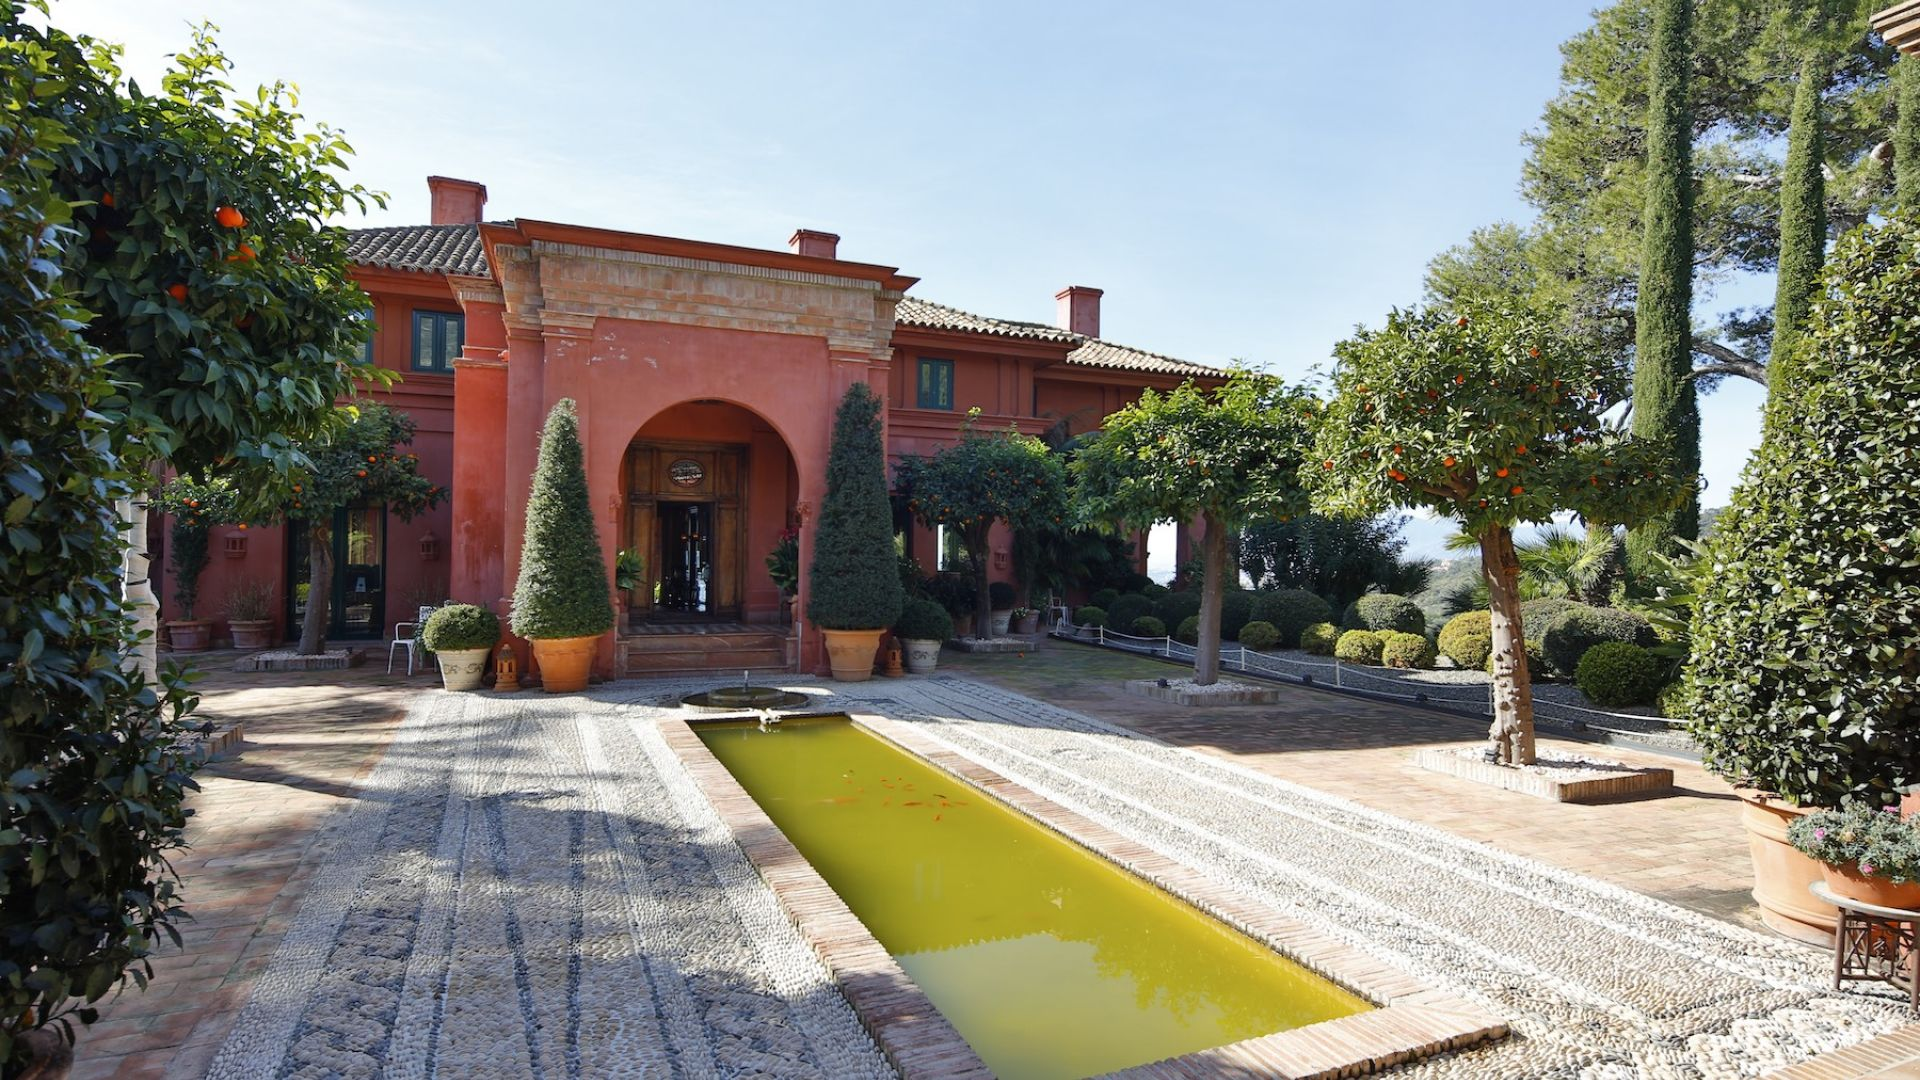 Moradia para Venda às Magnificent residence located in the hills above Marbella Marbella, Costa Del Sol 29600 Espanha